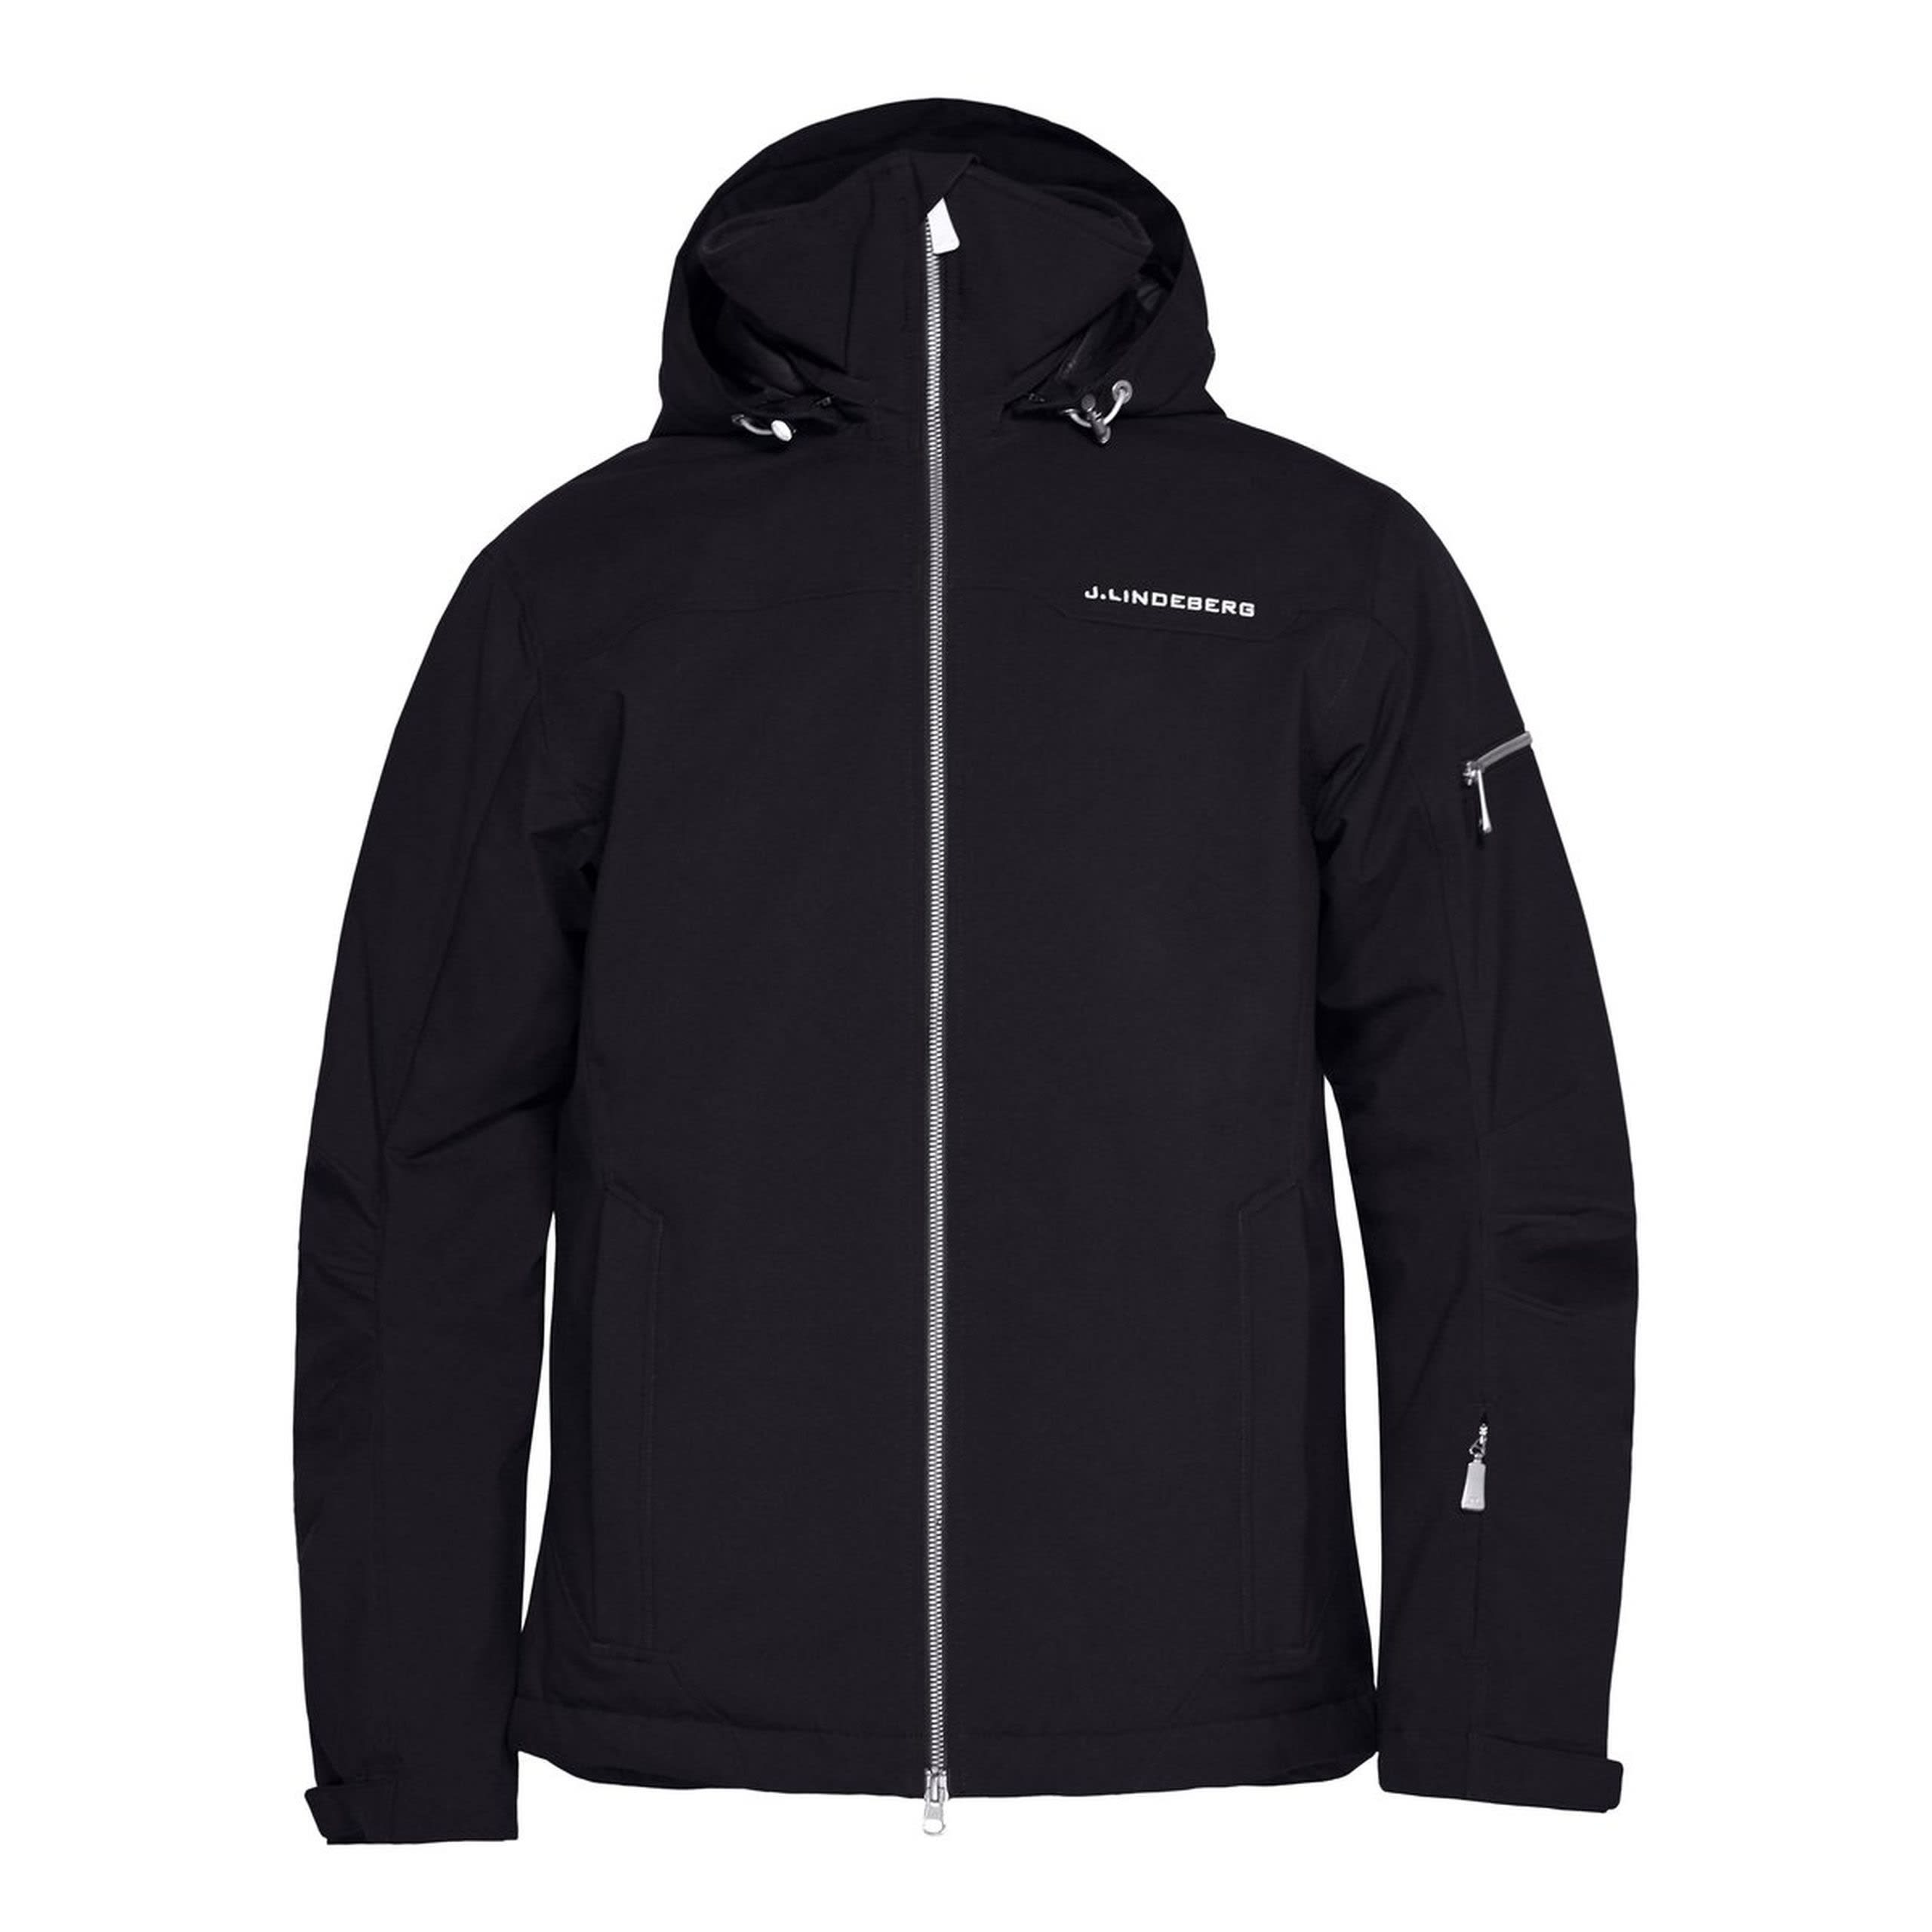 Men's Truuli JL 2 layer Ski Jacket